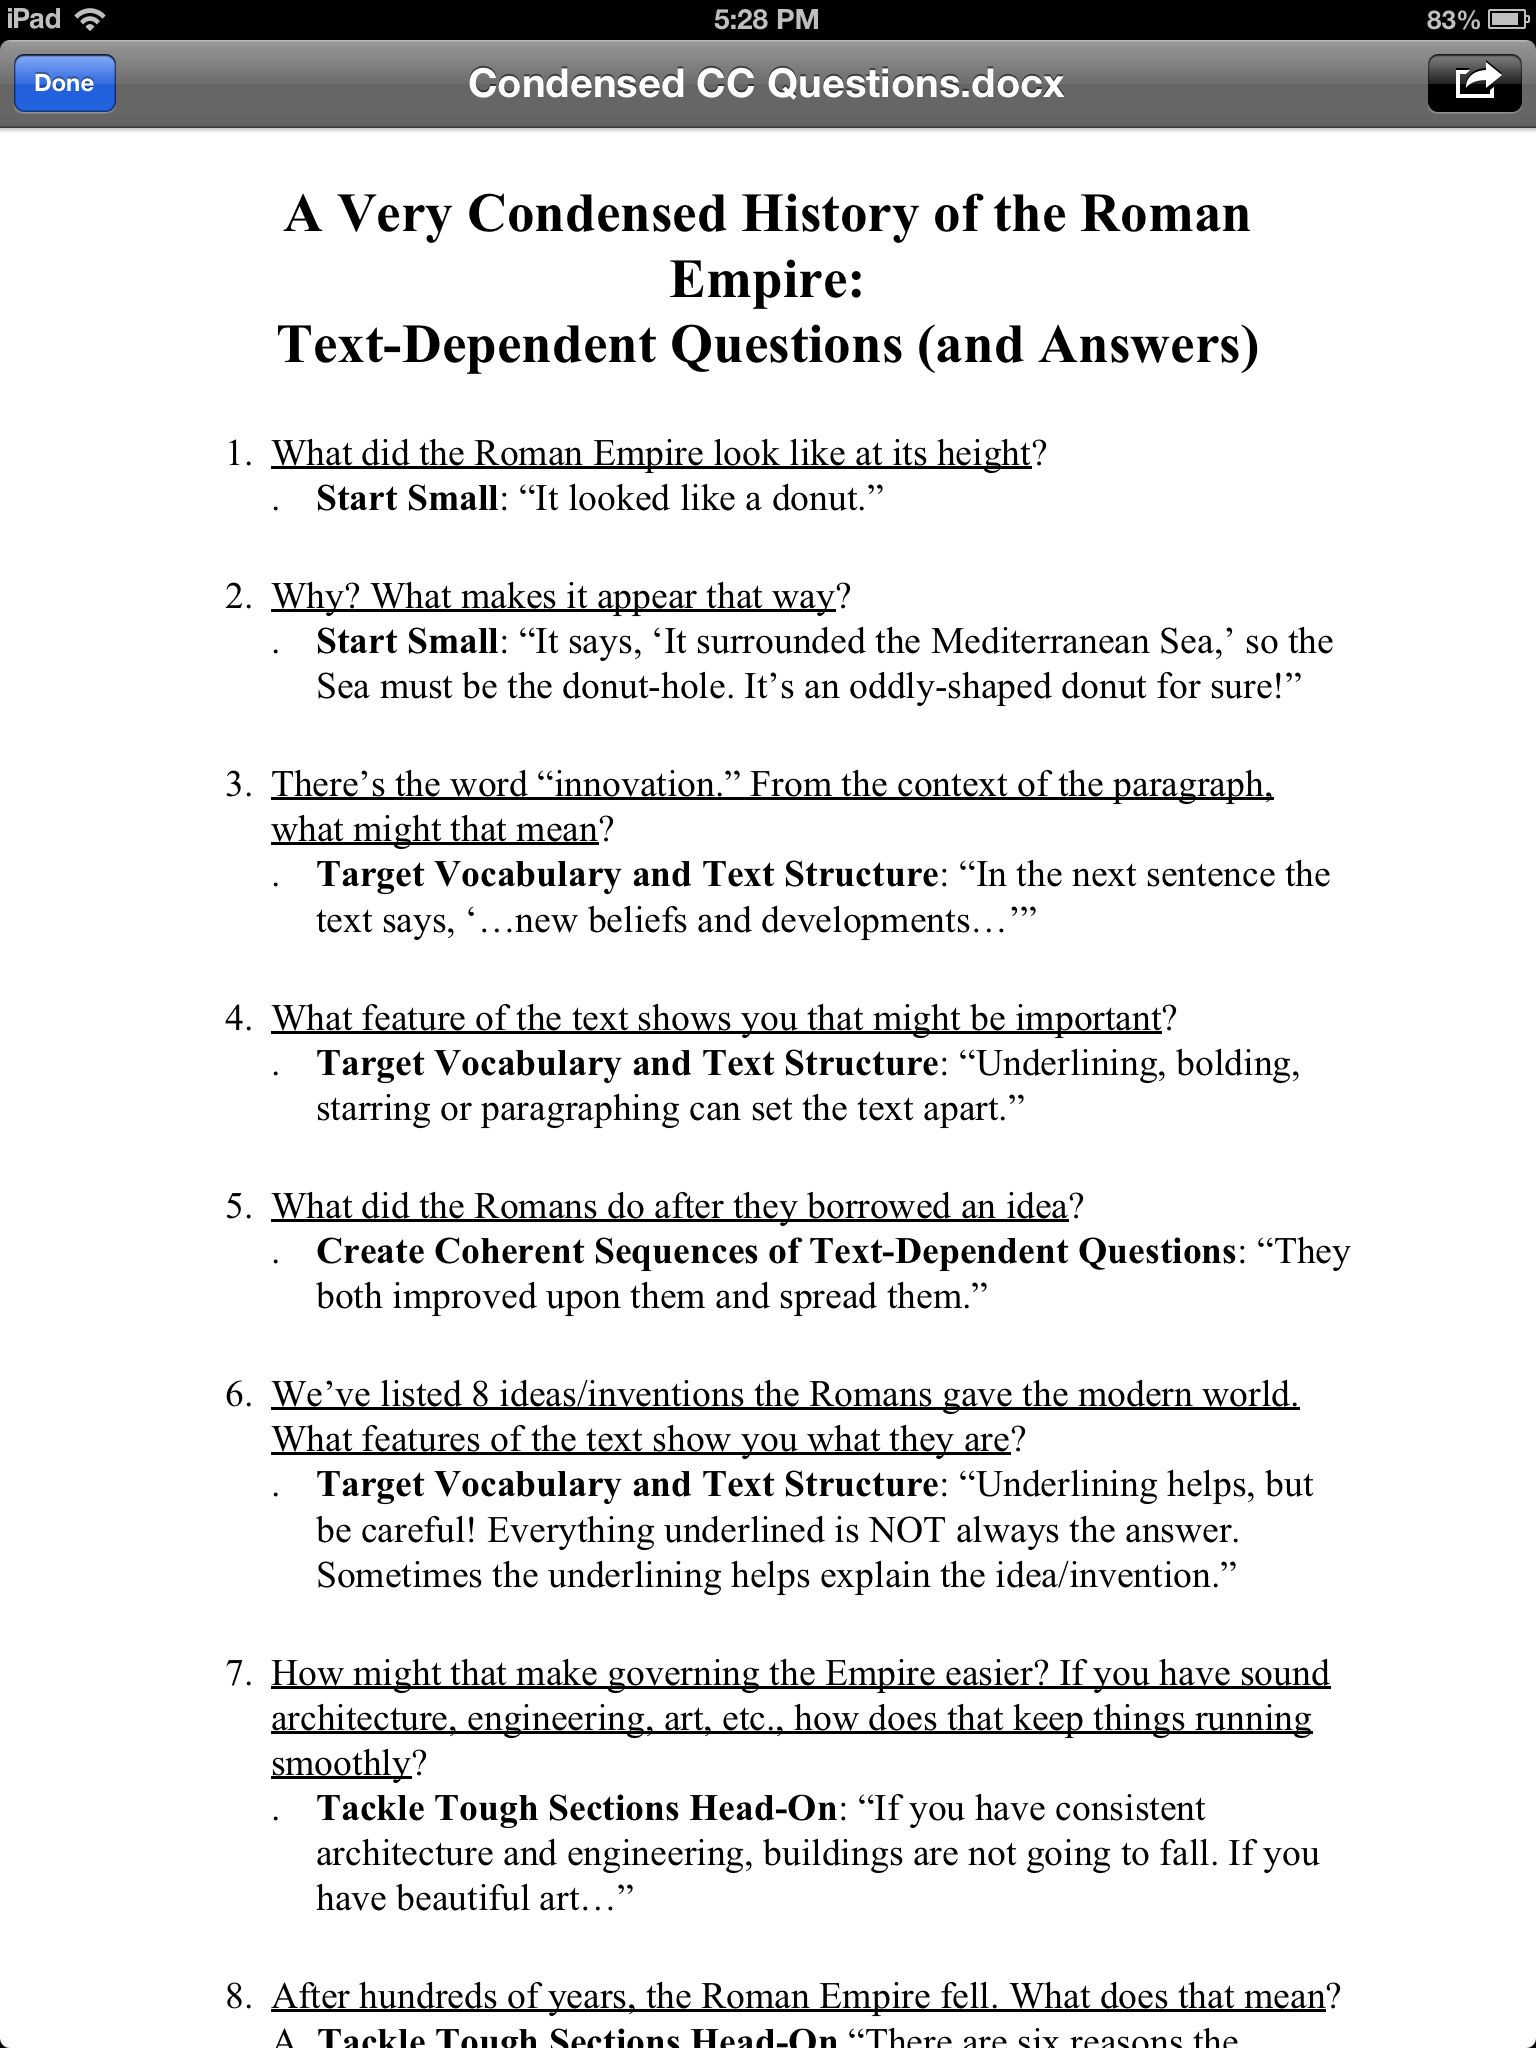 7th Grade History Worksheets Check Out the 7th Grade History Beginning Planning Around